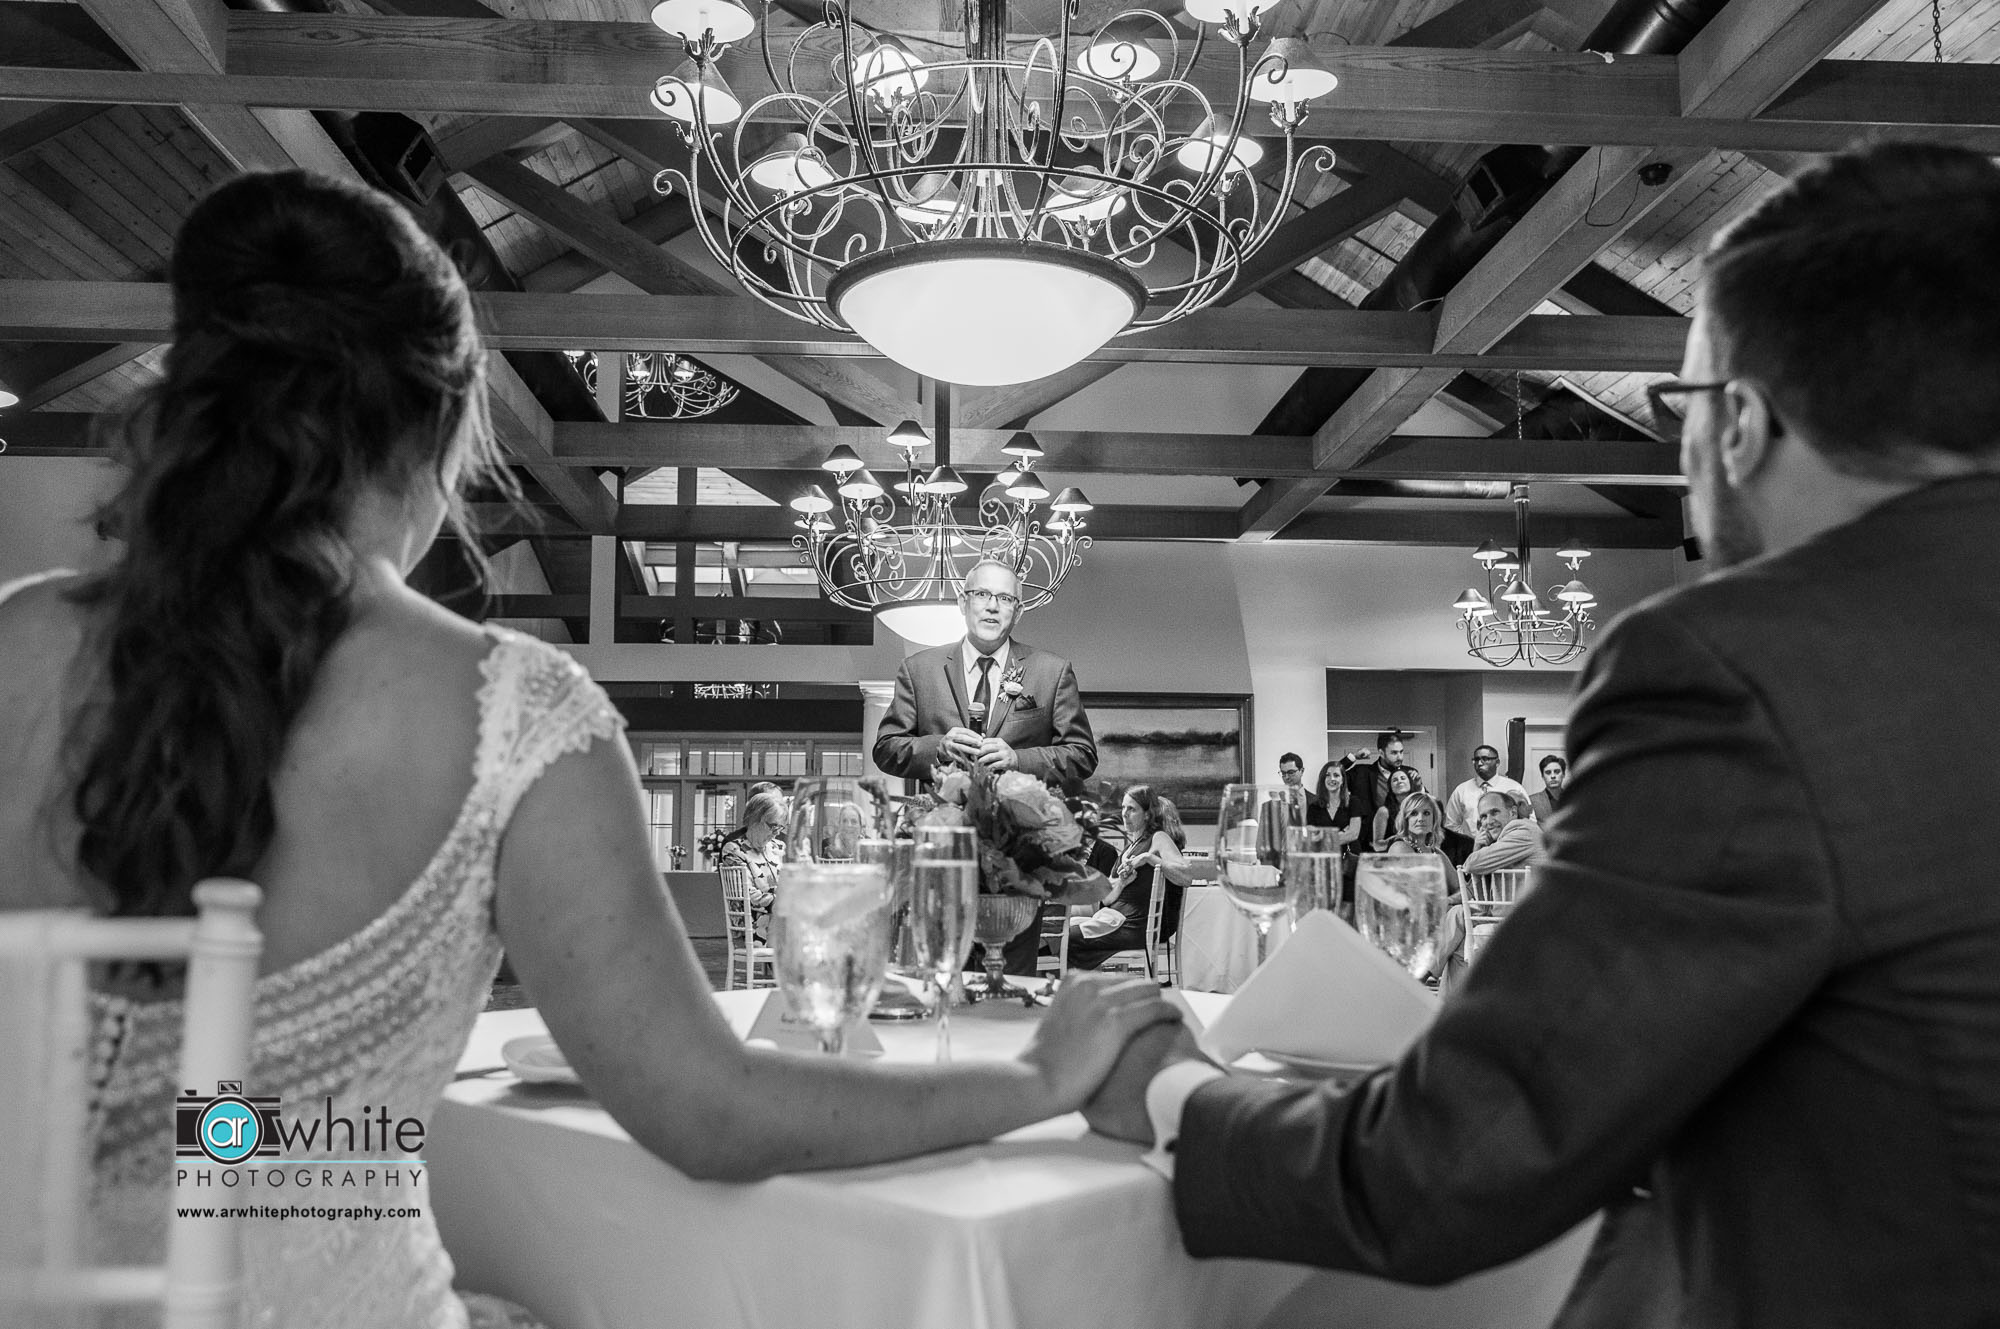 A classic black and white photojournalistic style image of the father of the bride's speech during the wedding reception at Lighthouse Sound.